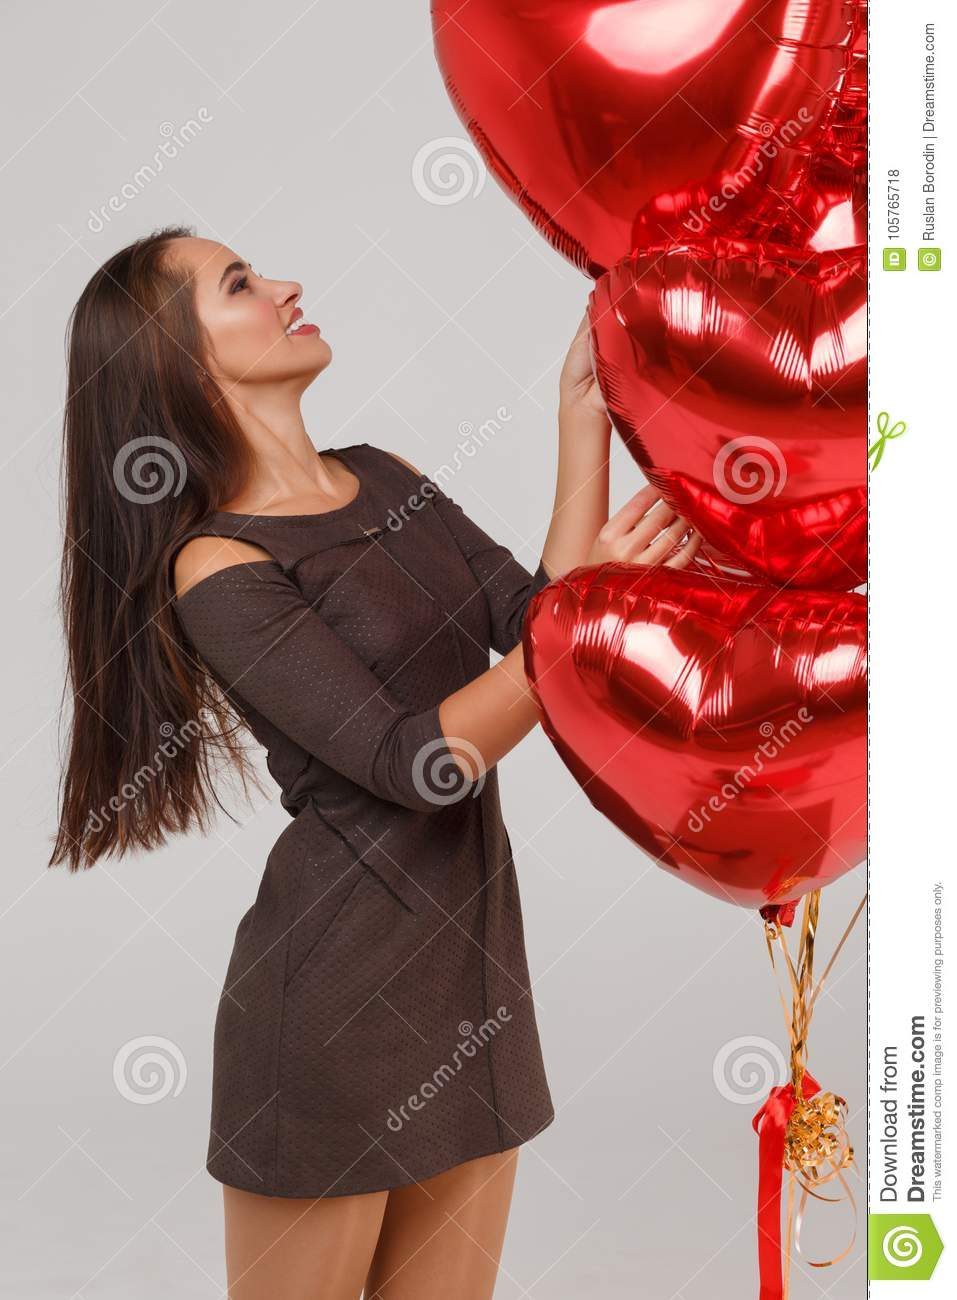 Young beautiful girl with red air balloons on a grey background. 8 March concept.